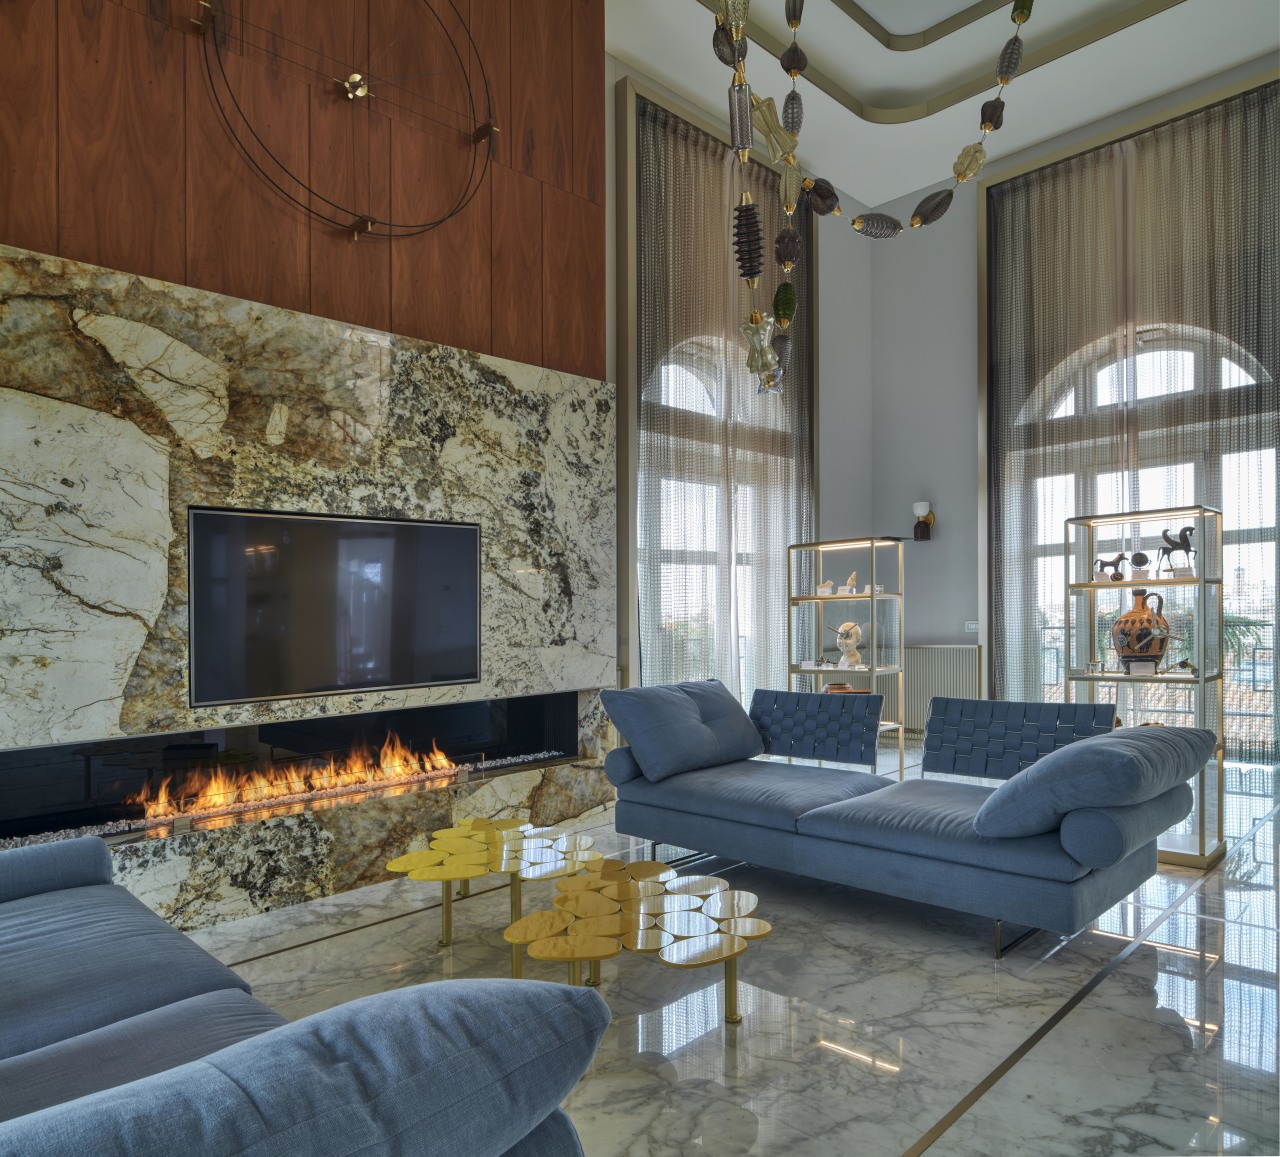 A striking bioethanol marble fireplace warms the room